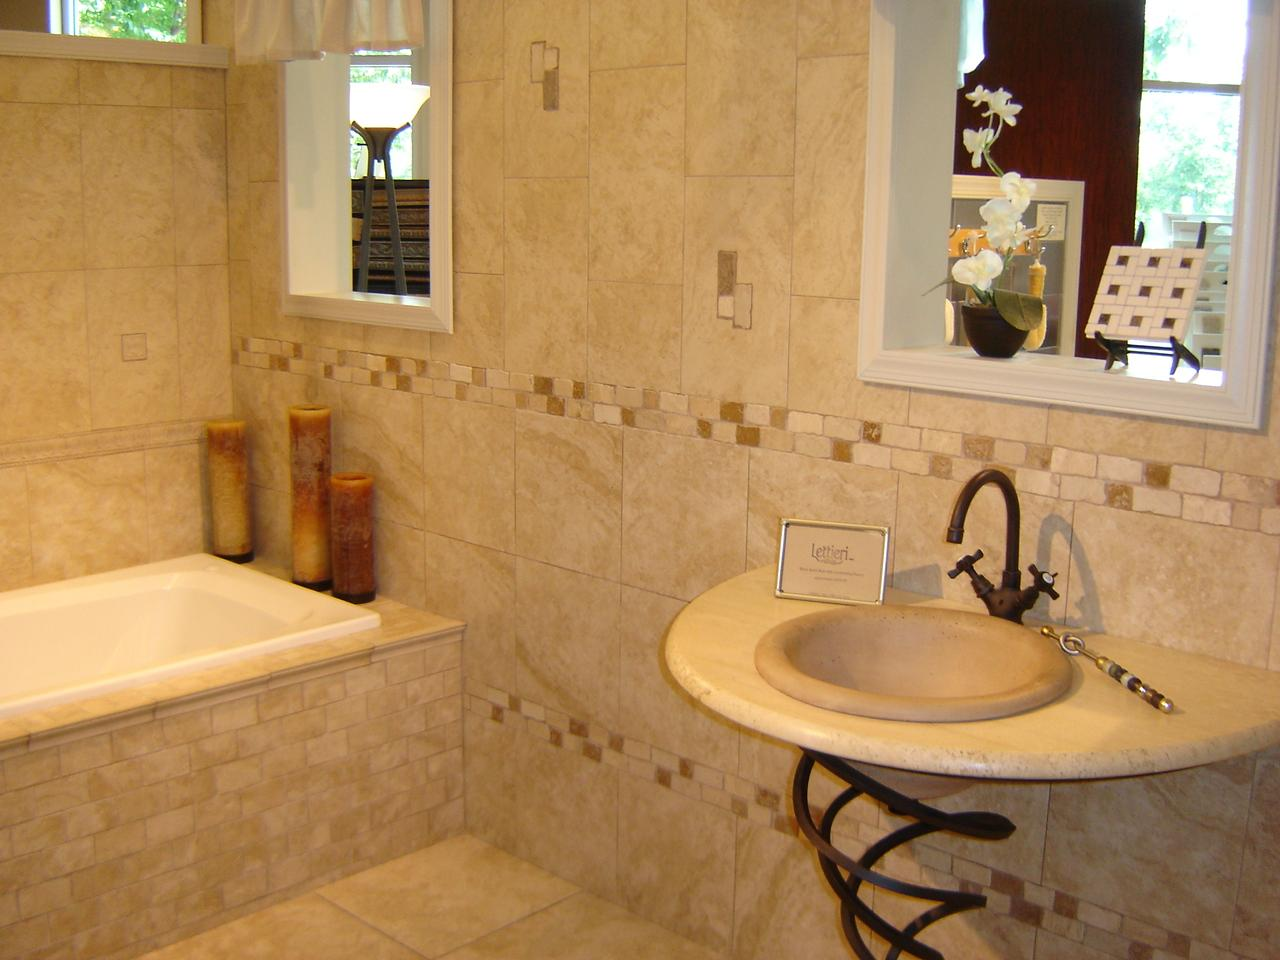 Bathroom tile design ideas for Designs of bathroom tiles